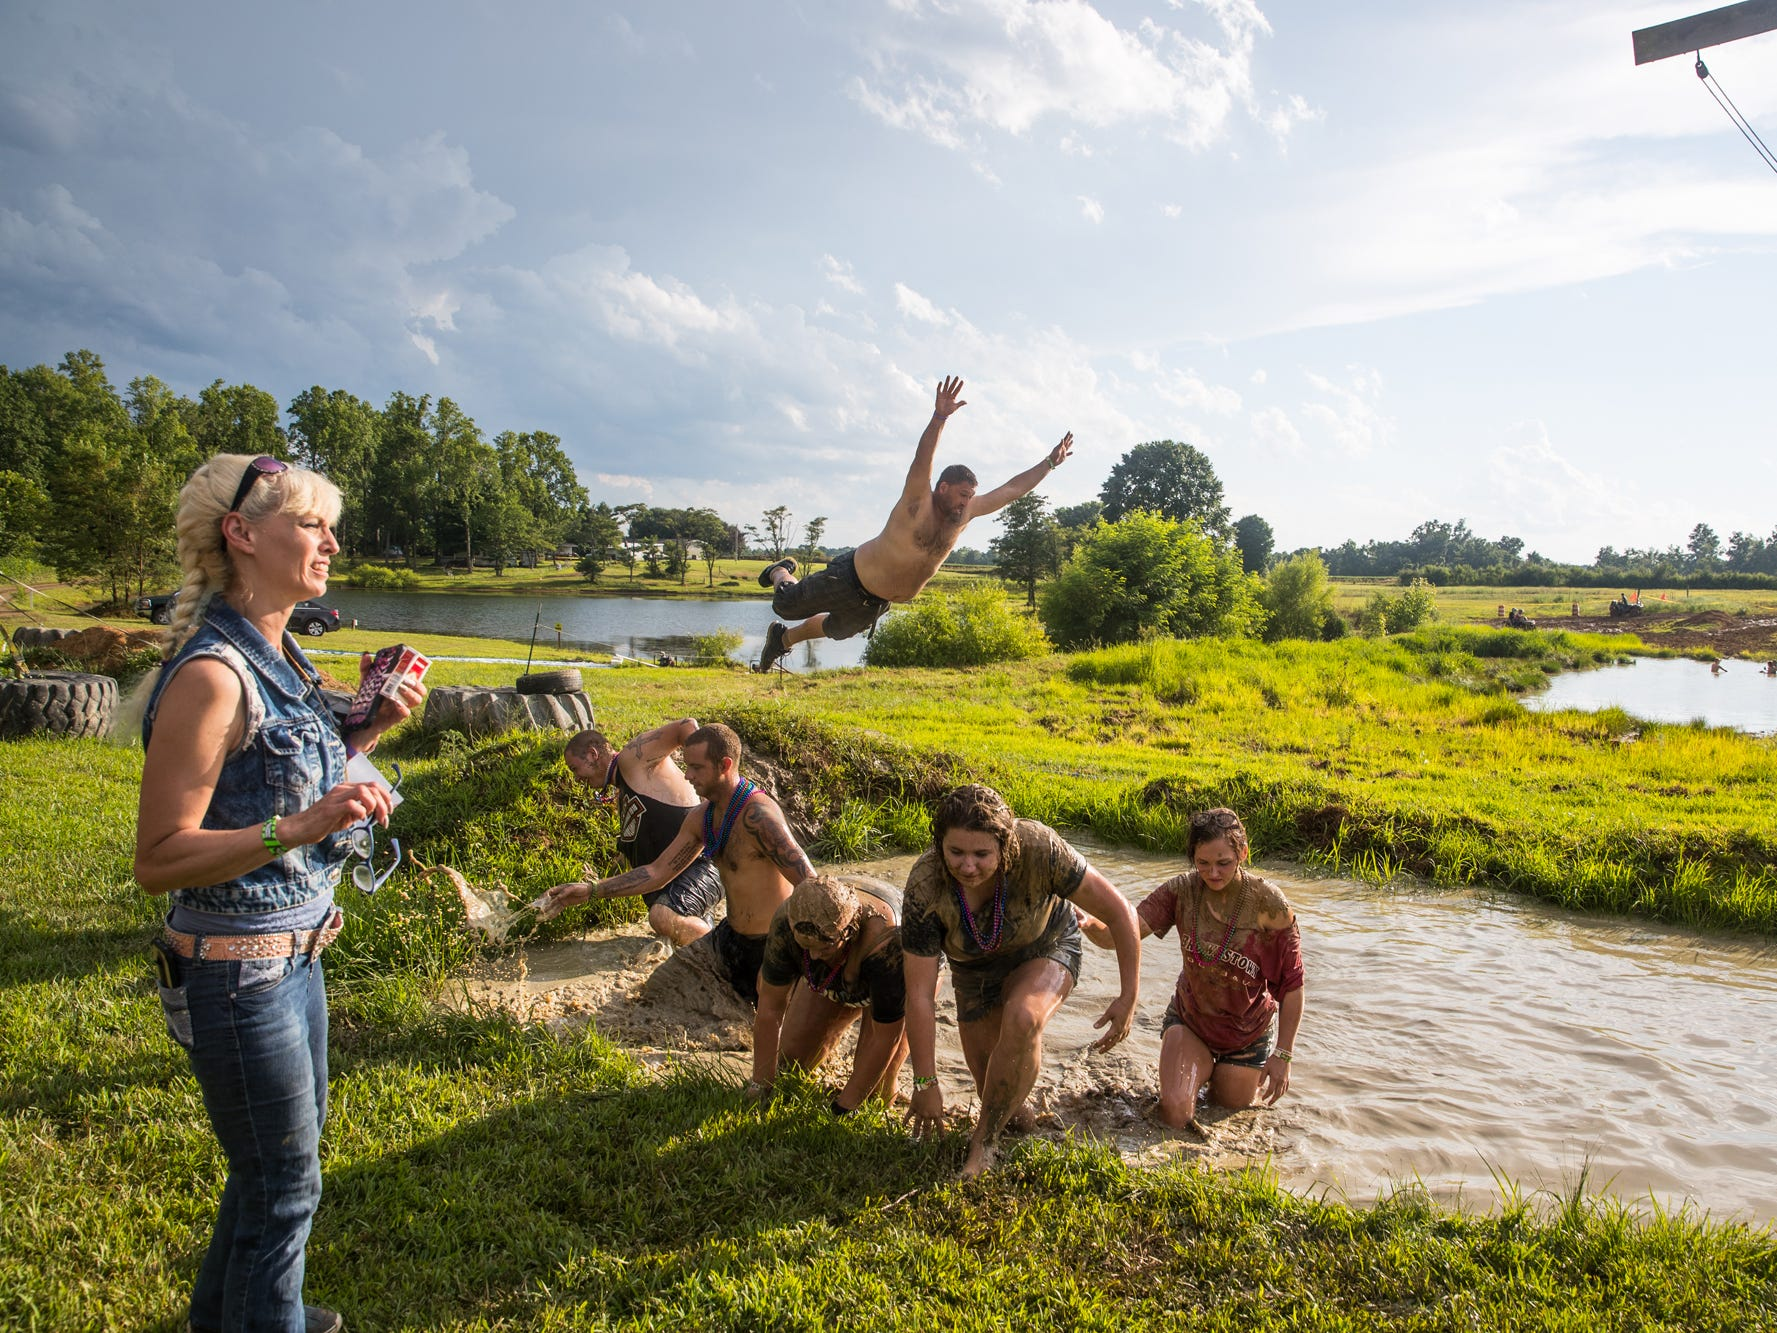 Participants swim and wash off mud in a water hole during the Redneck Rave at BlackSwan Mudpit in Medora, Ind., on Friday, July 20, 2018.